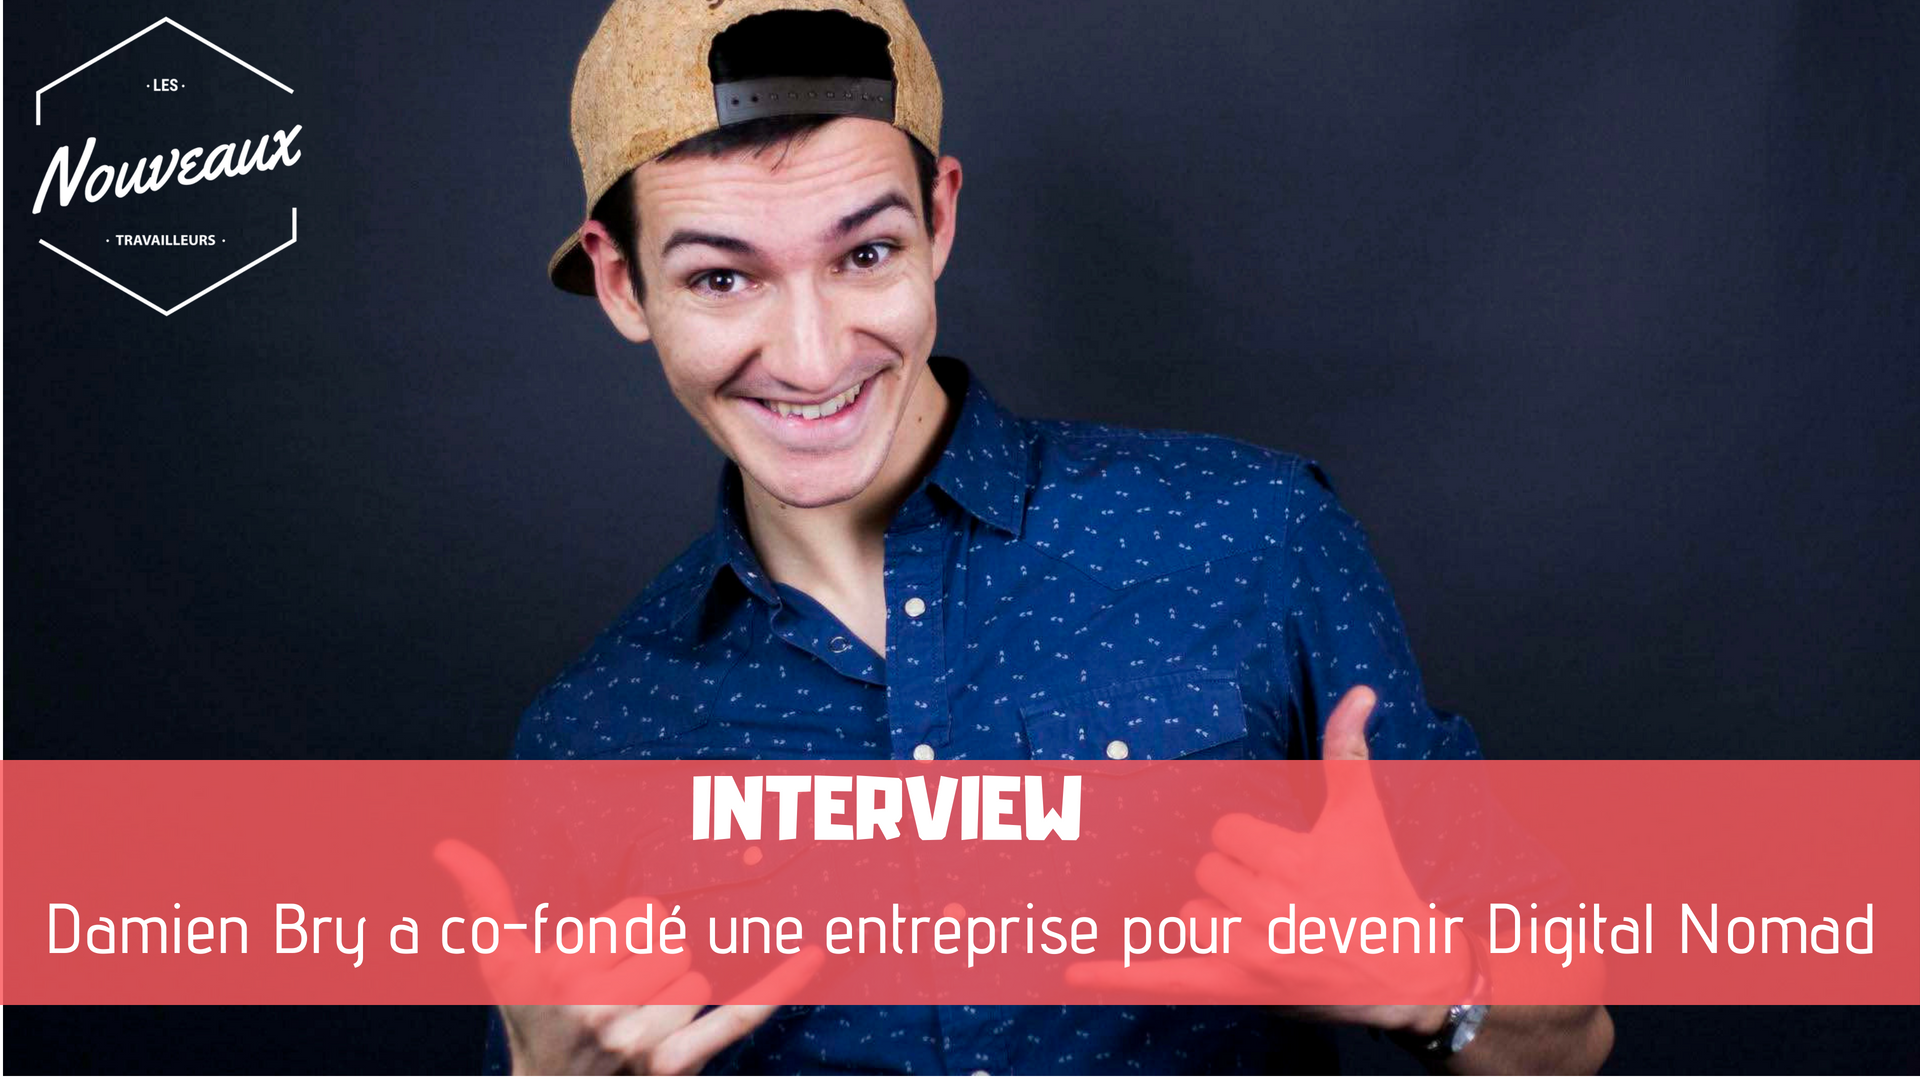 Co-fonder une Entreprise pour devenir Digital Nomad | Interview de Damien Bry